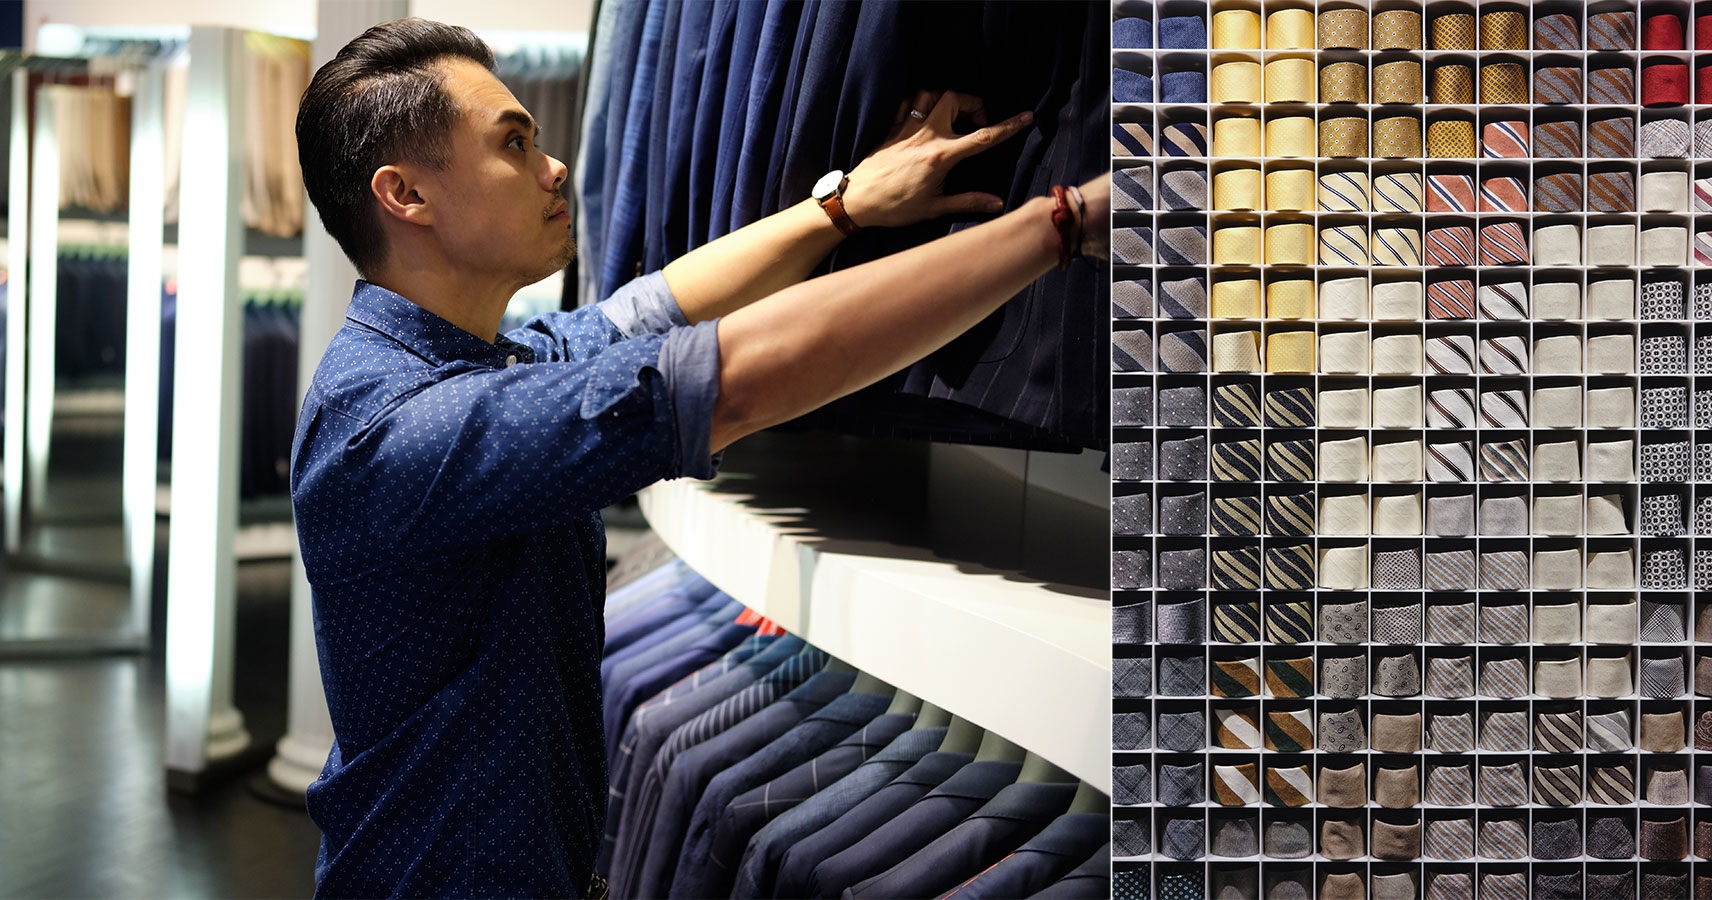 suitsupply store browsing suits and ties - effortless gent